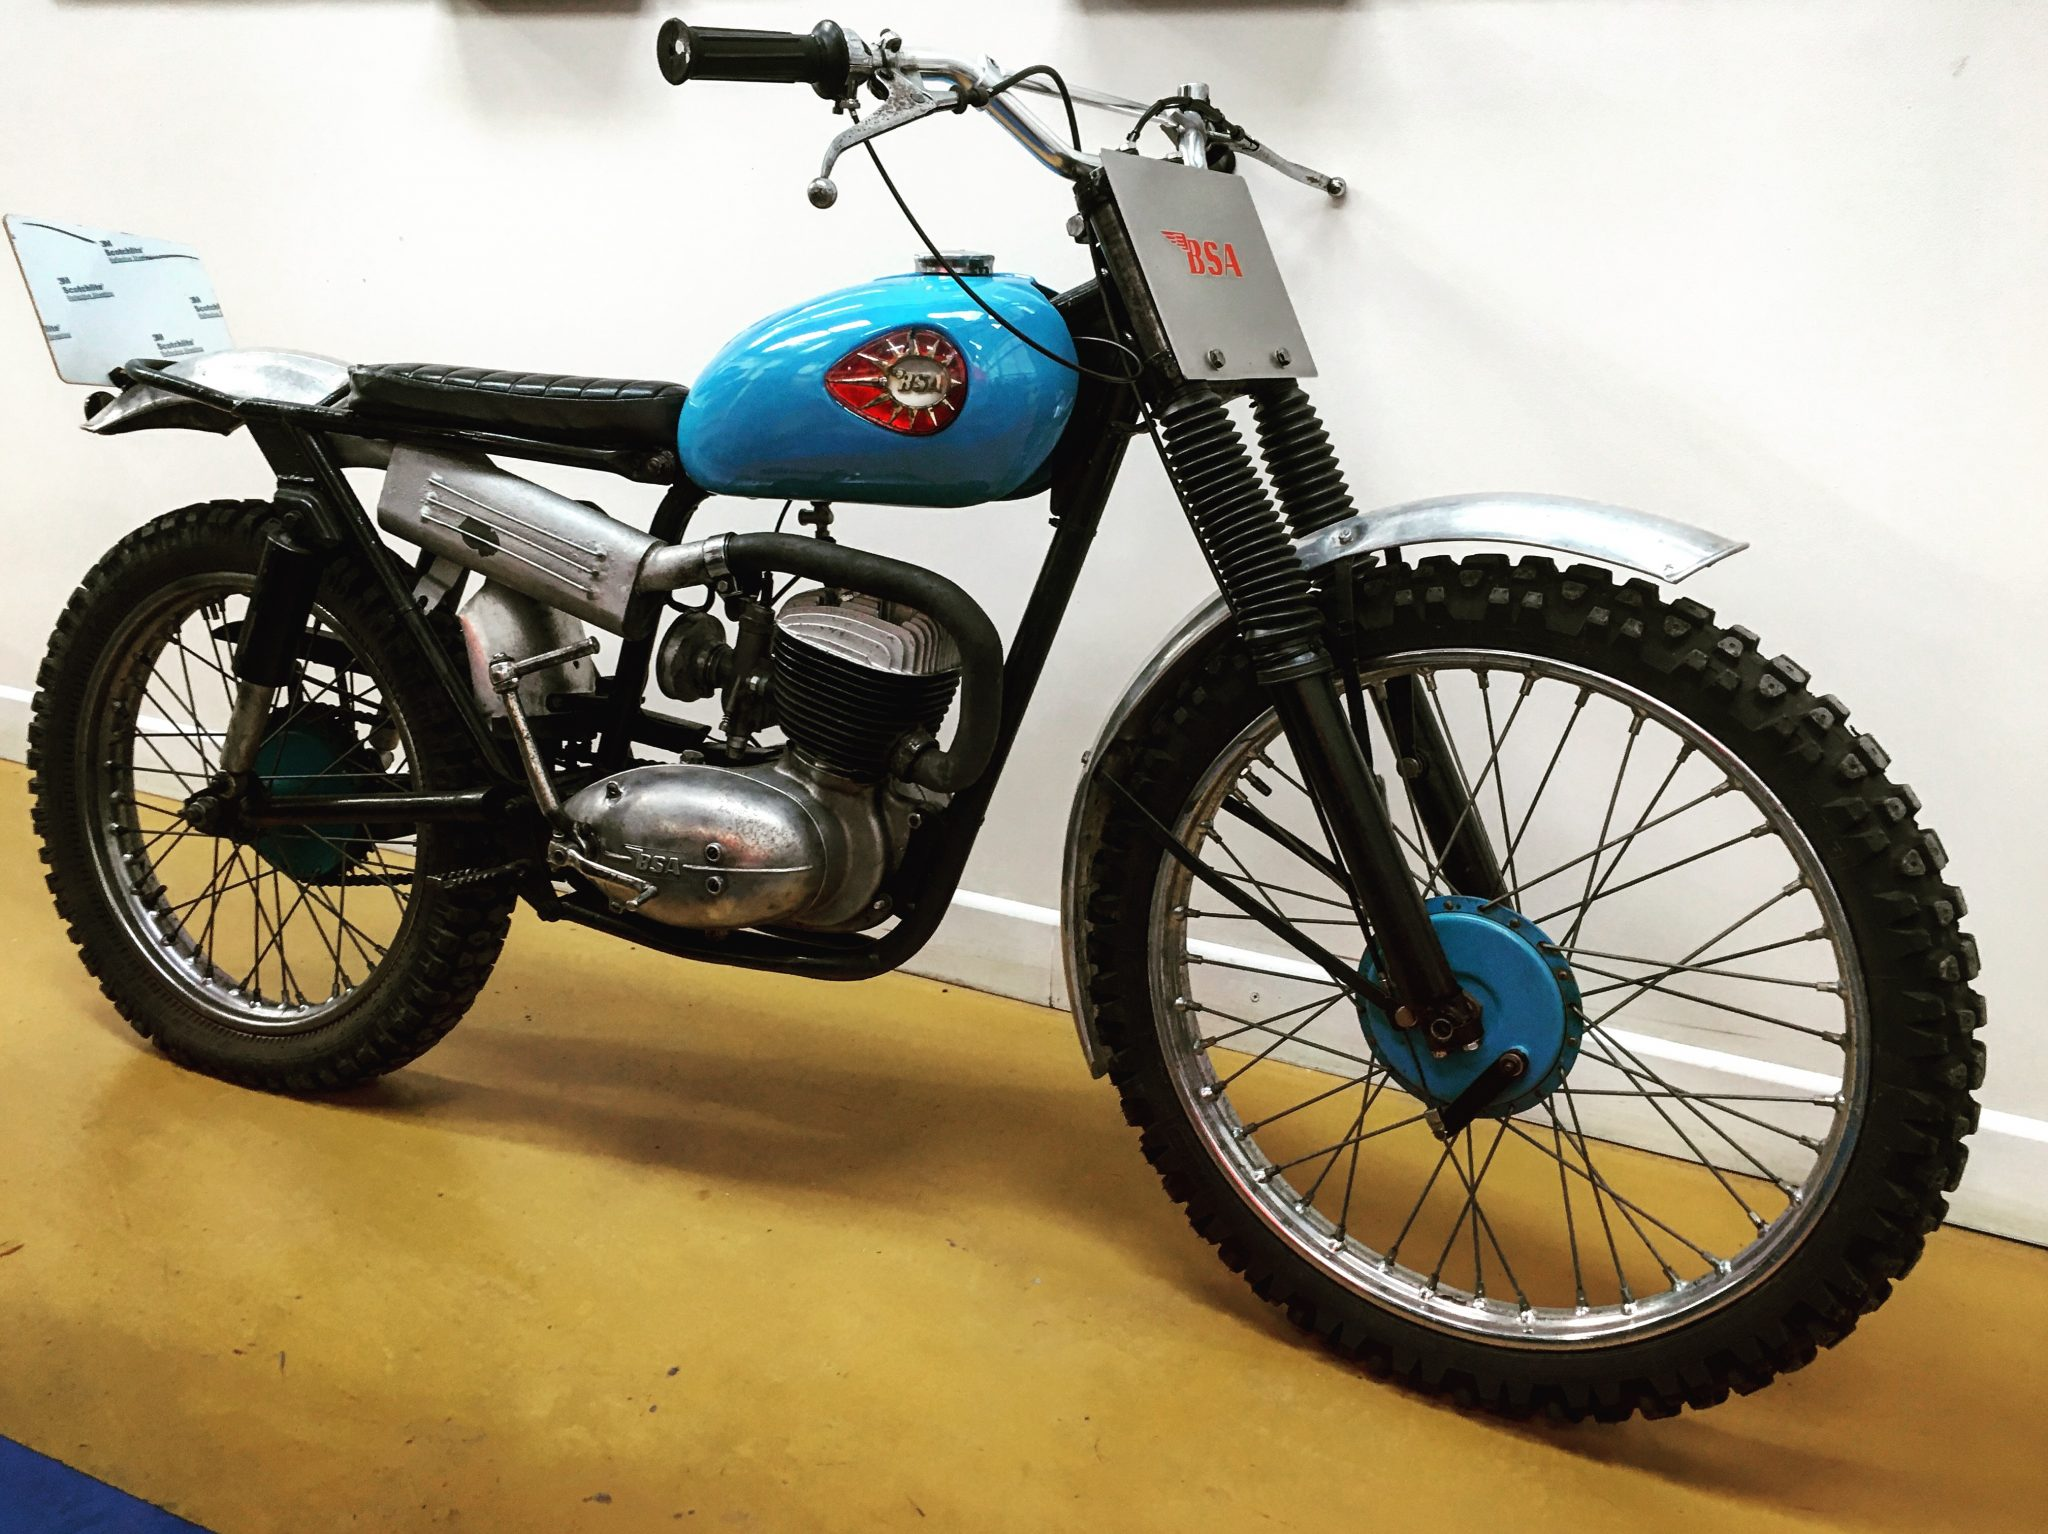 New Arrival: 1963 BSA Trials